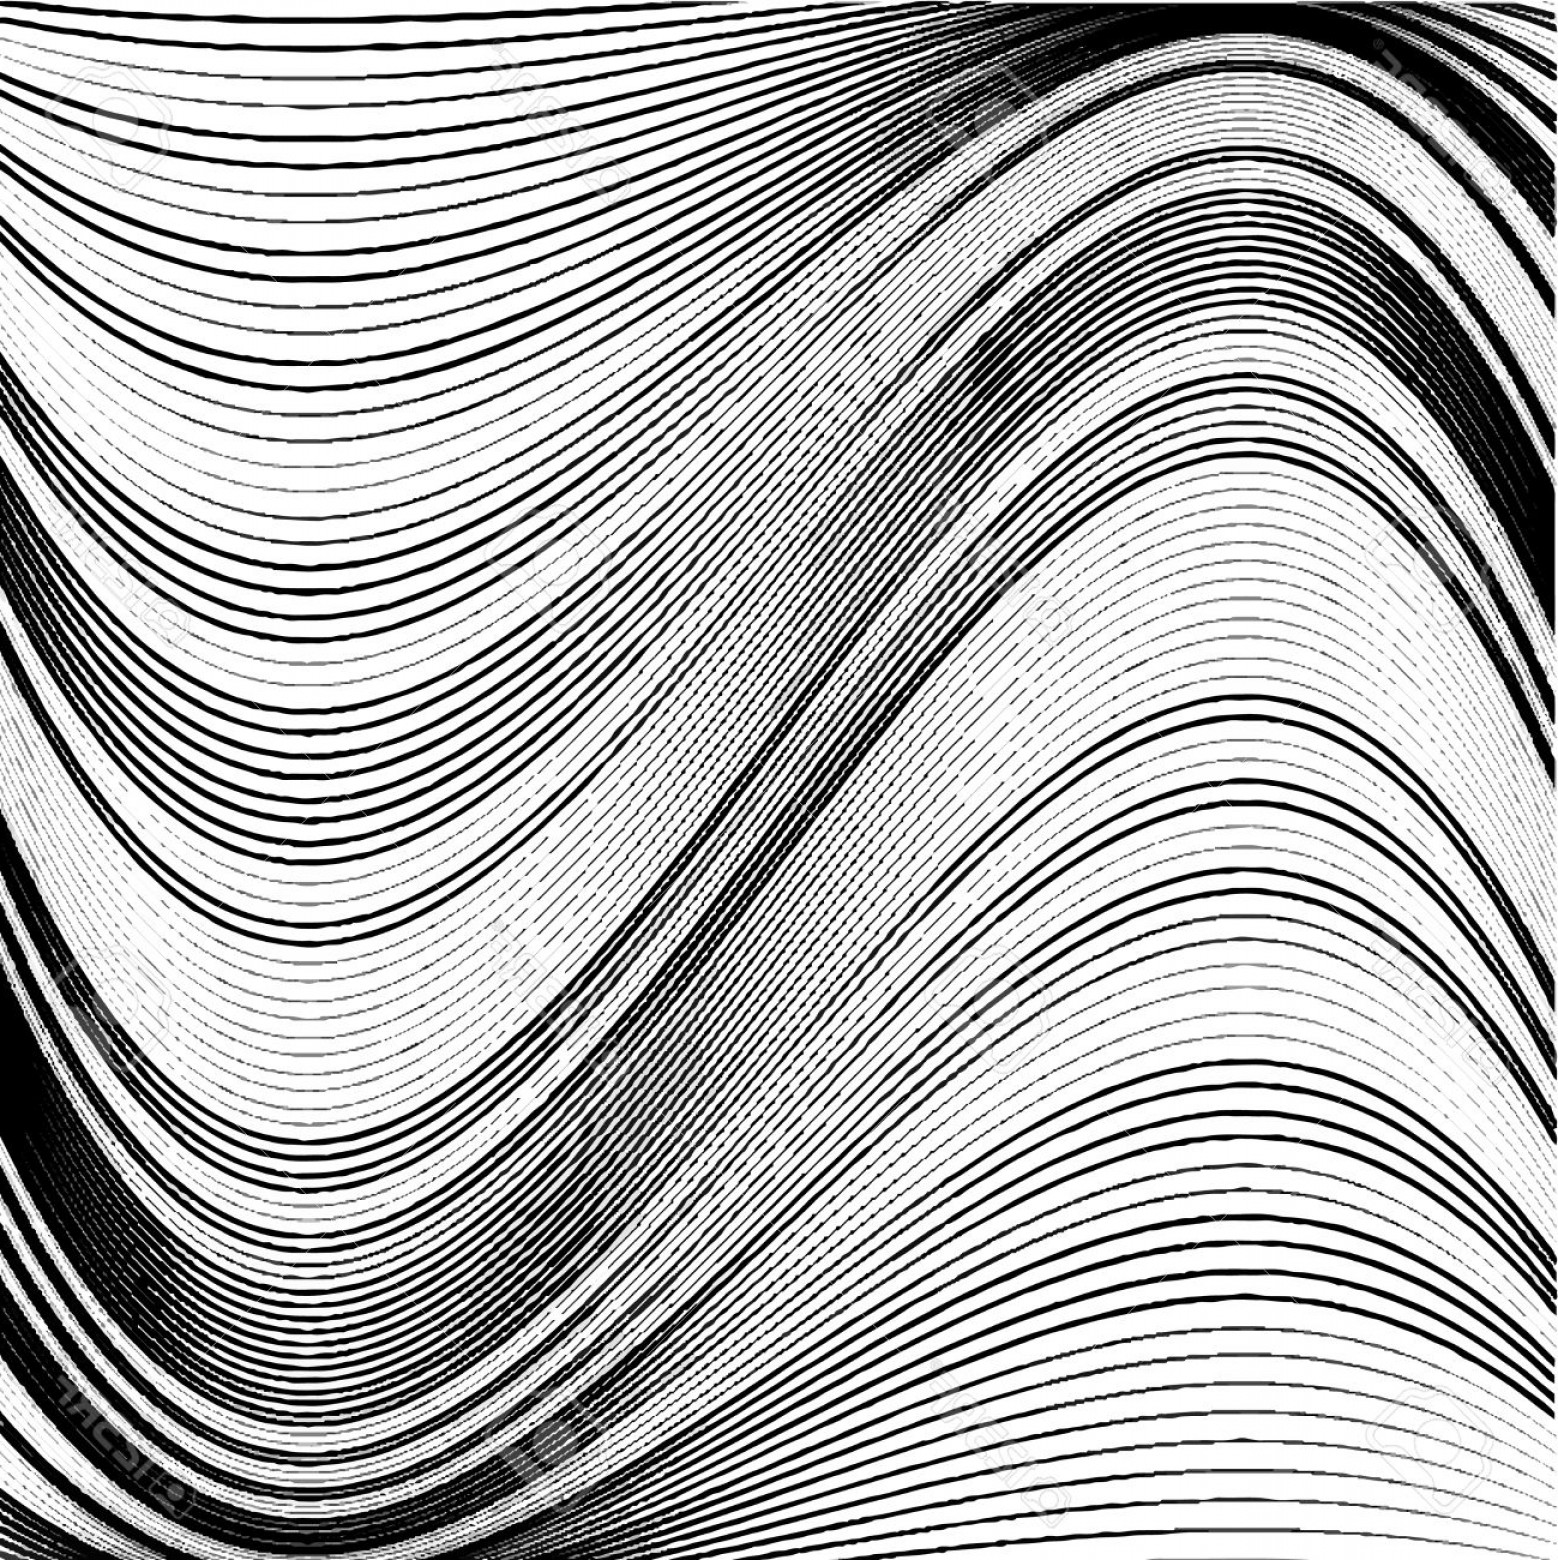 Black Abstract Lines Vector: Photostock Vector Abstract Background Of Wavy Lines Black And White Vector Background